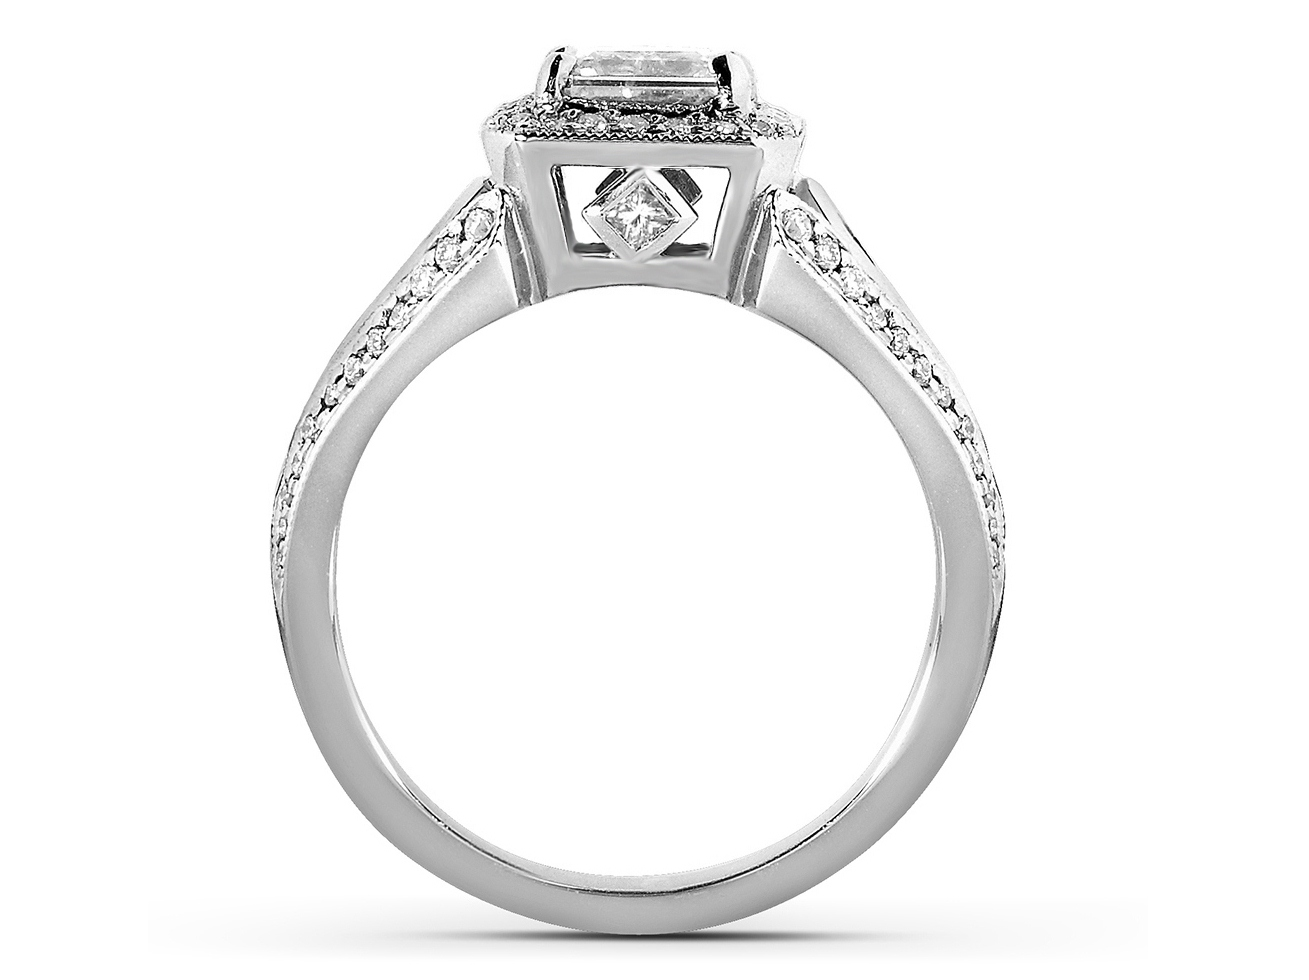 Asscher Cut Diamond Halo Engagement Ring with Kite Shaped Accents in 14k White Gold